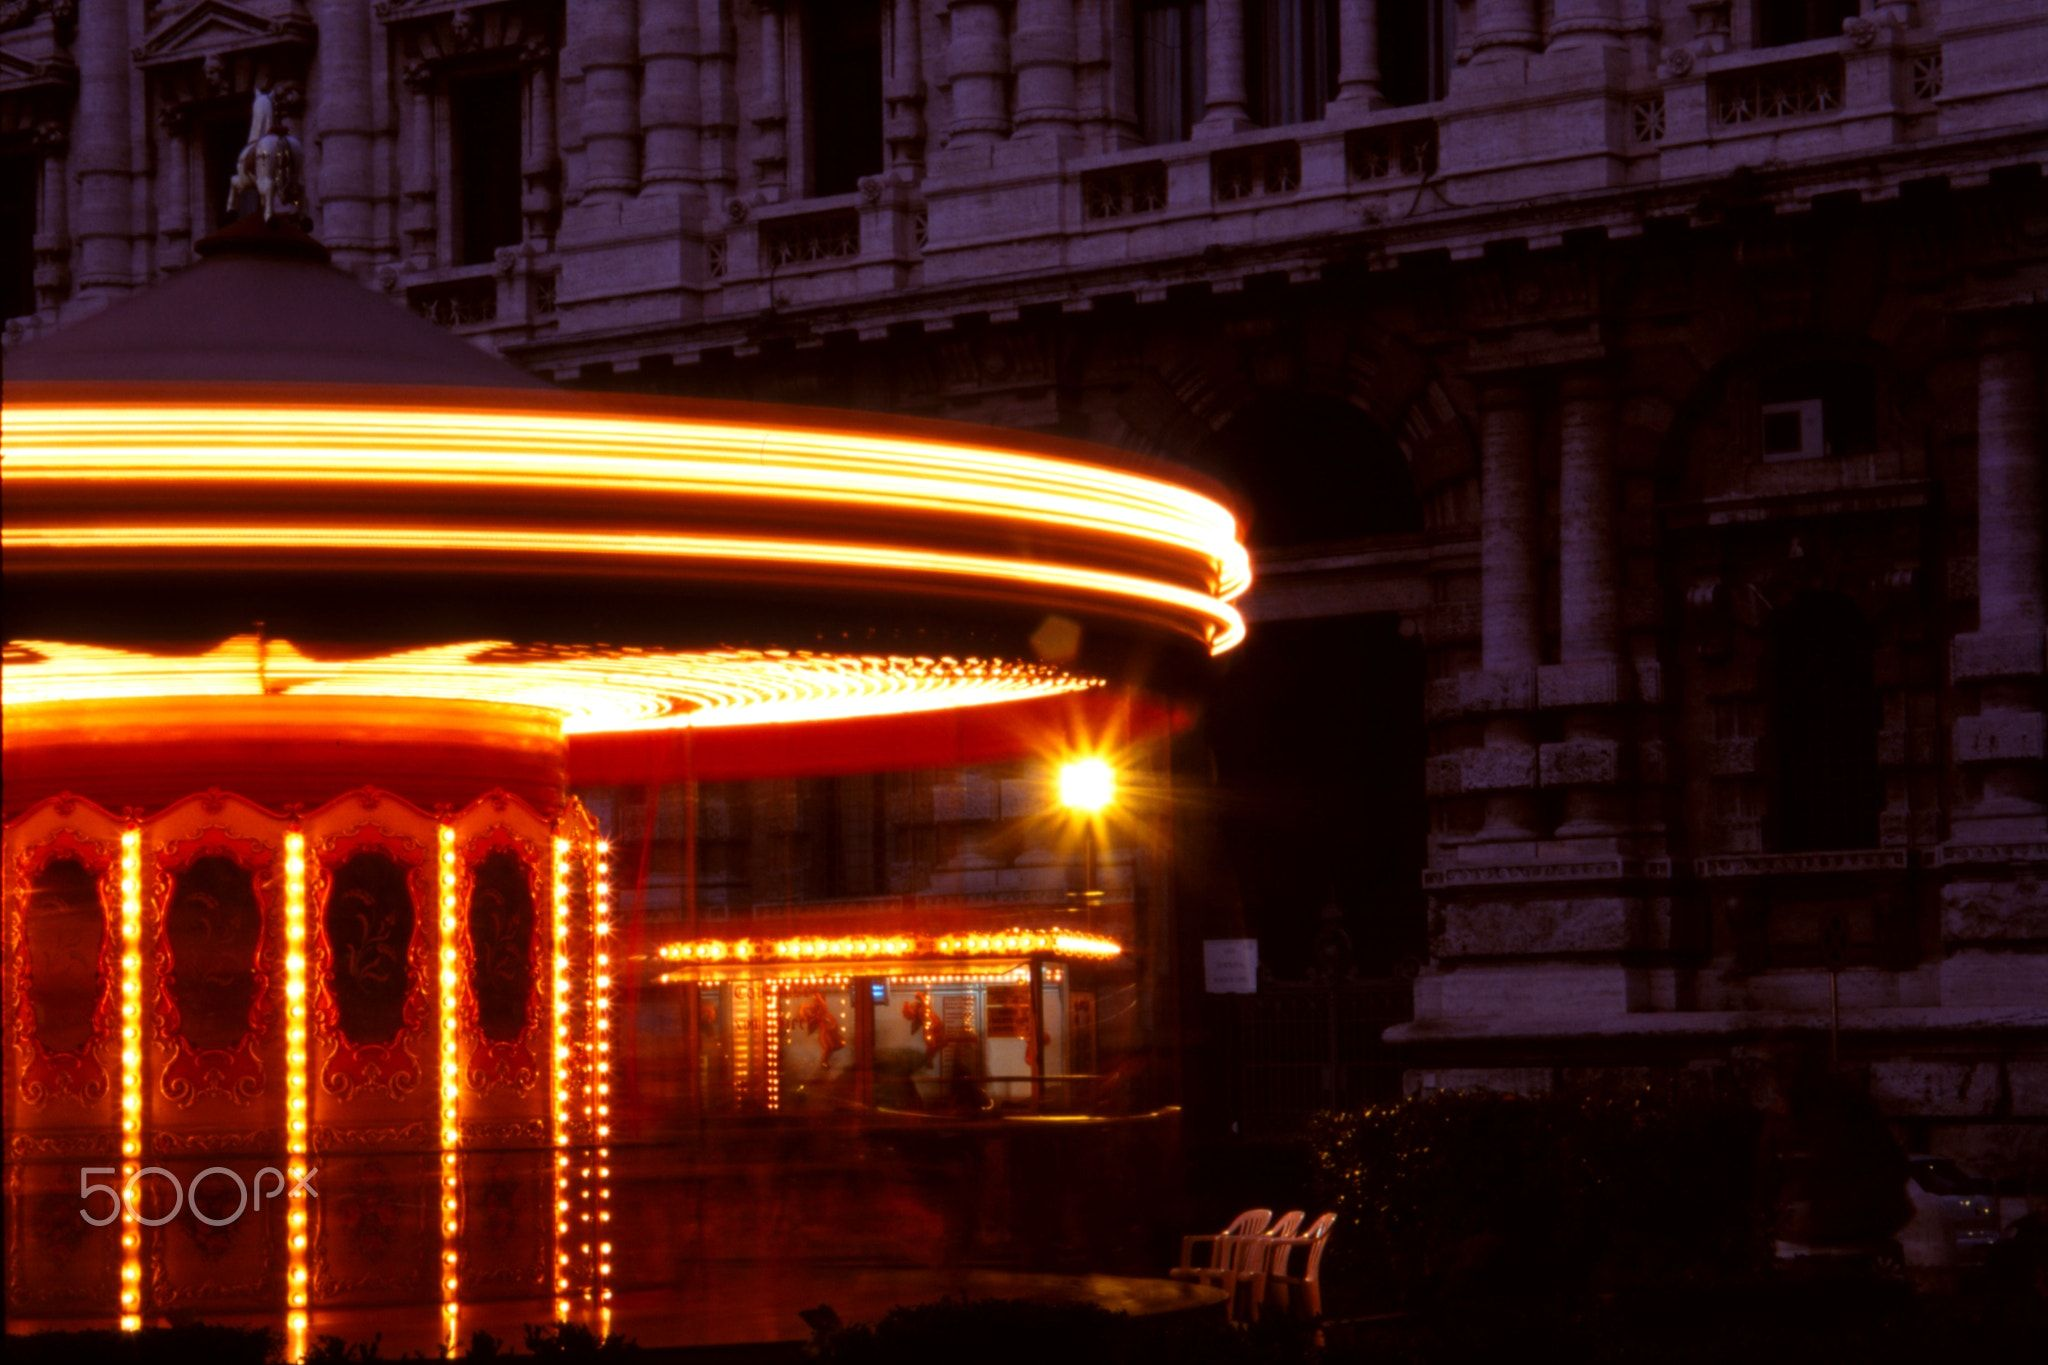 Carousel - Carousel in front of the Palace of Justice in Rome